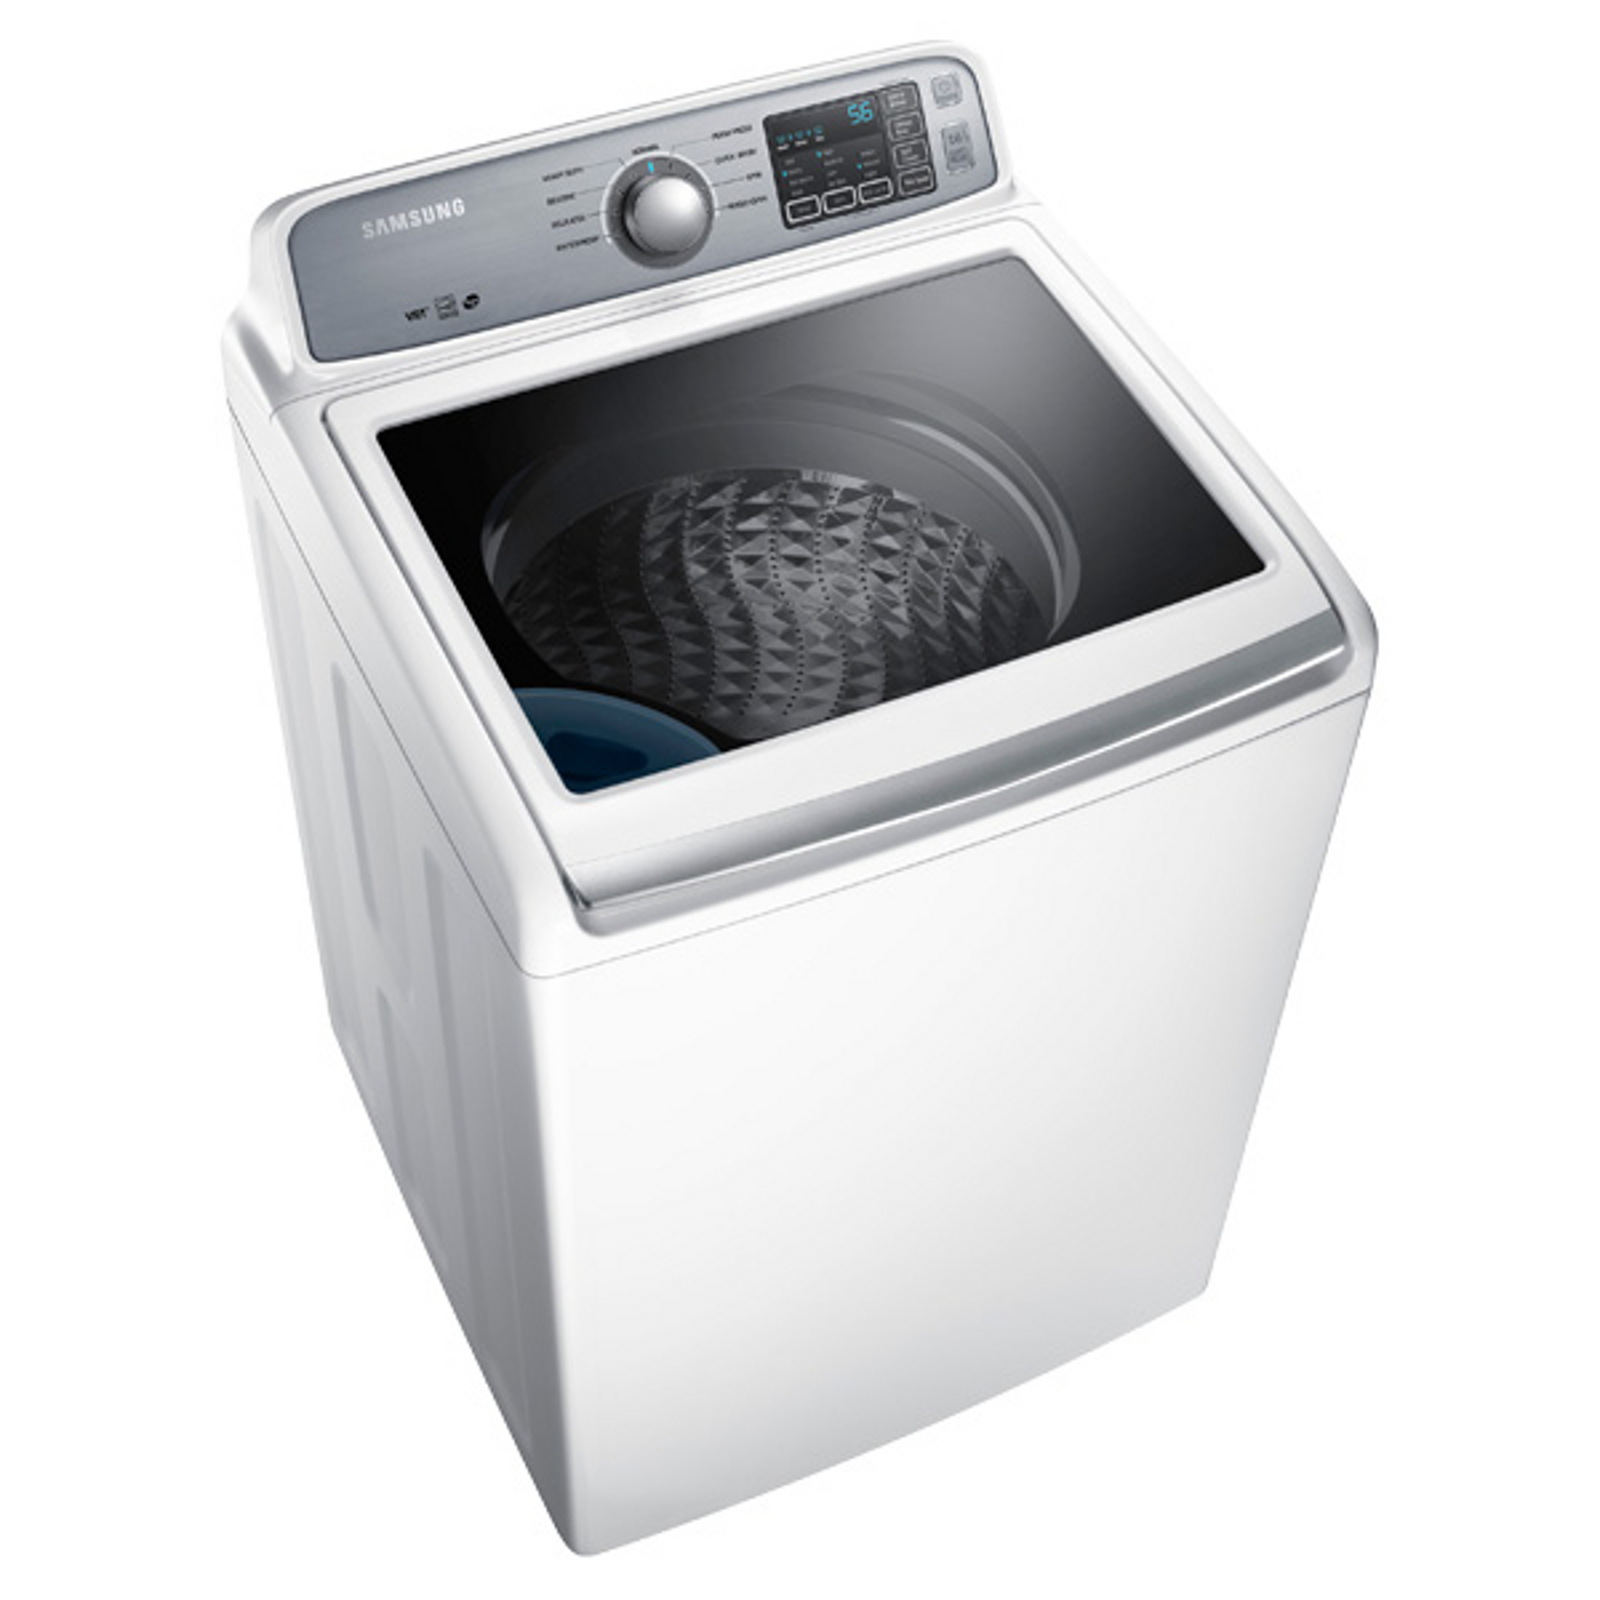 Samsung 4.5 cu. ft. Top-Load Washer - White